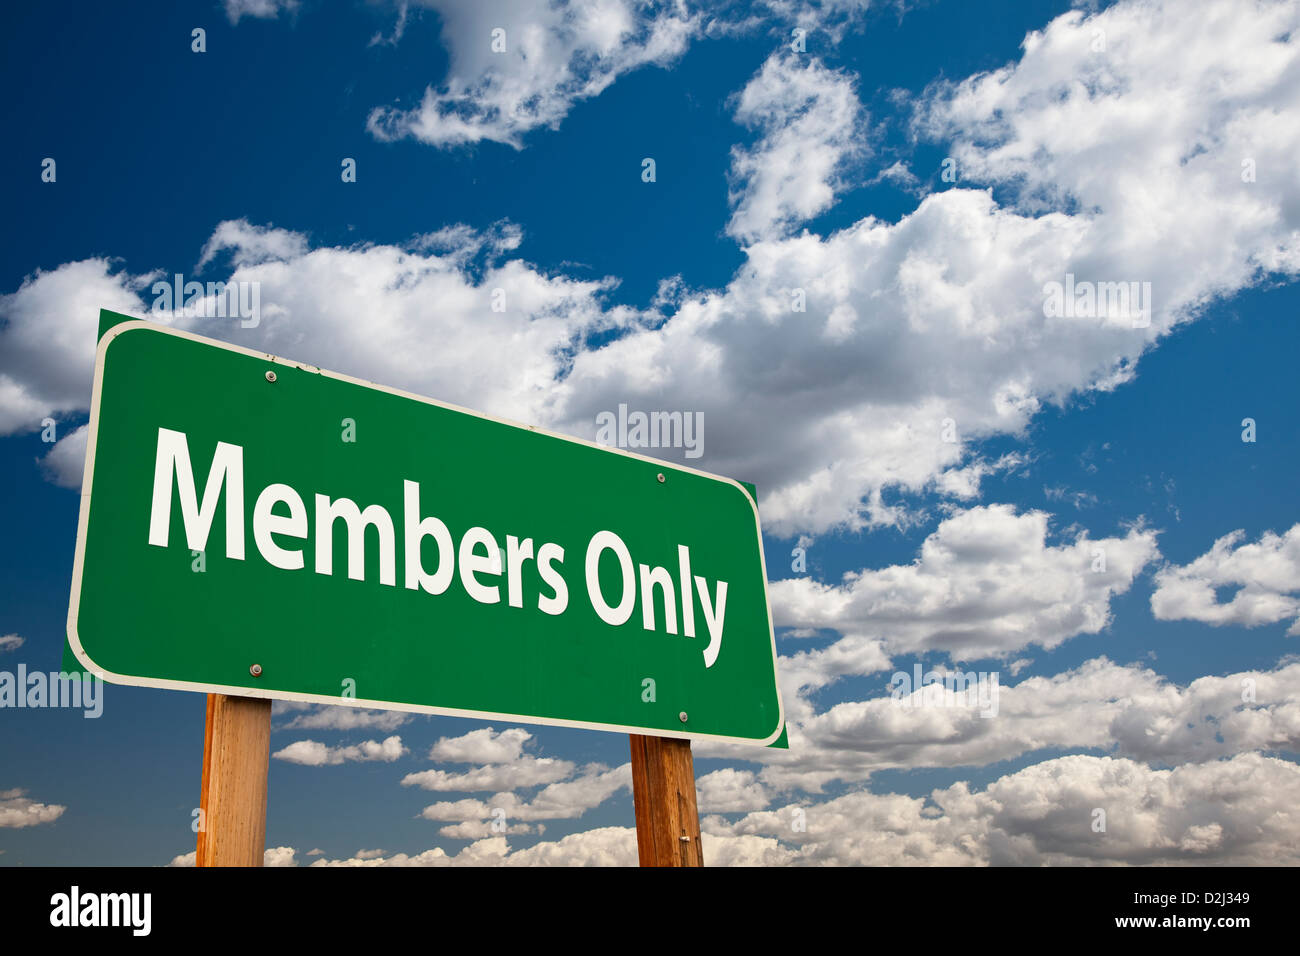 Members Only Green Road Sign Over Clouds and Sky. - Stock Image